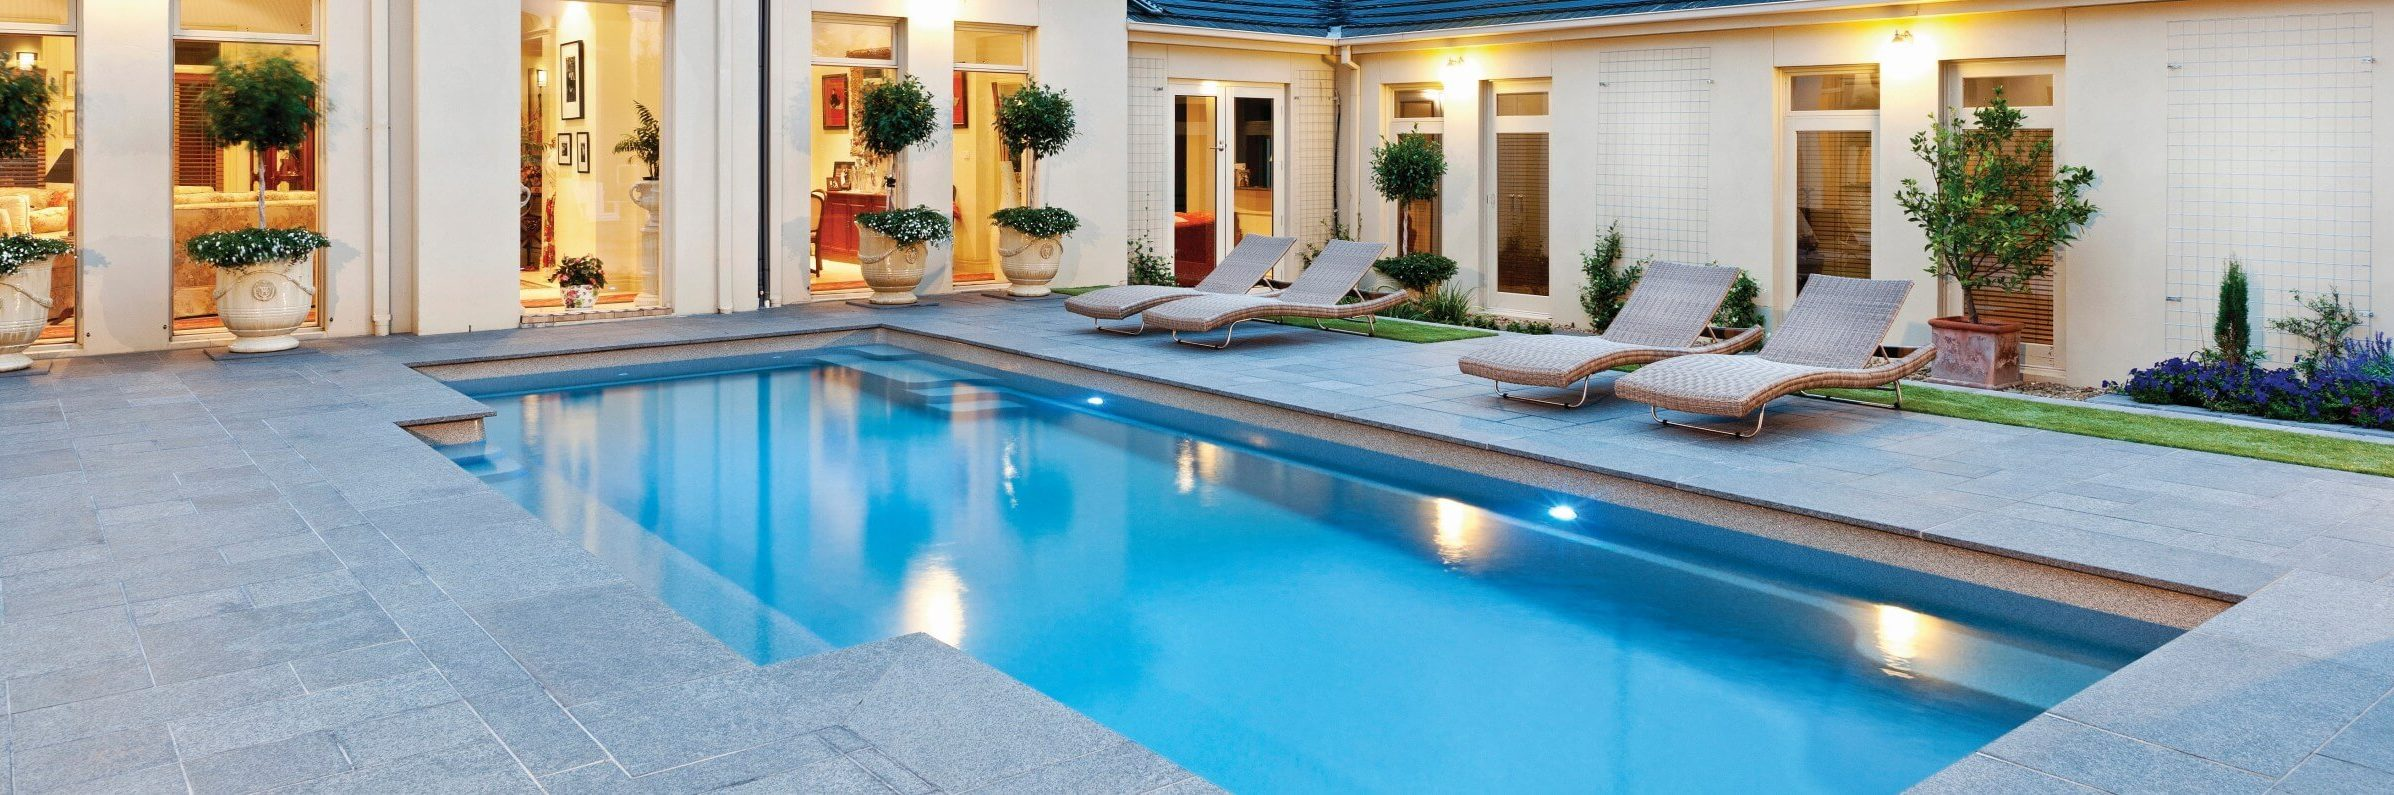 Building self-cleaning swimming pools